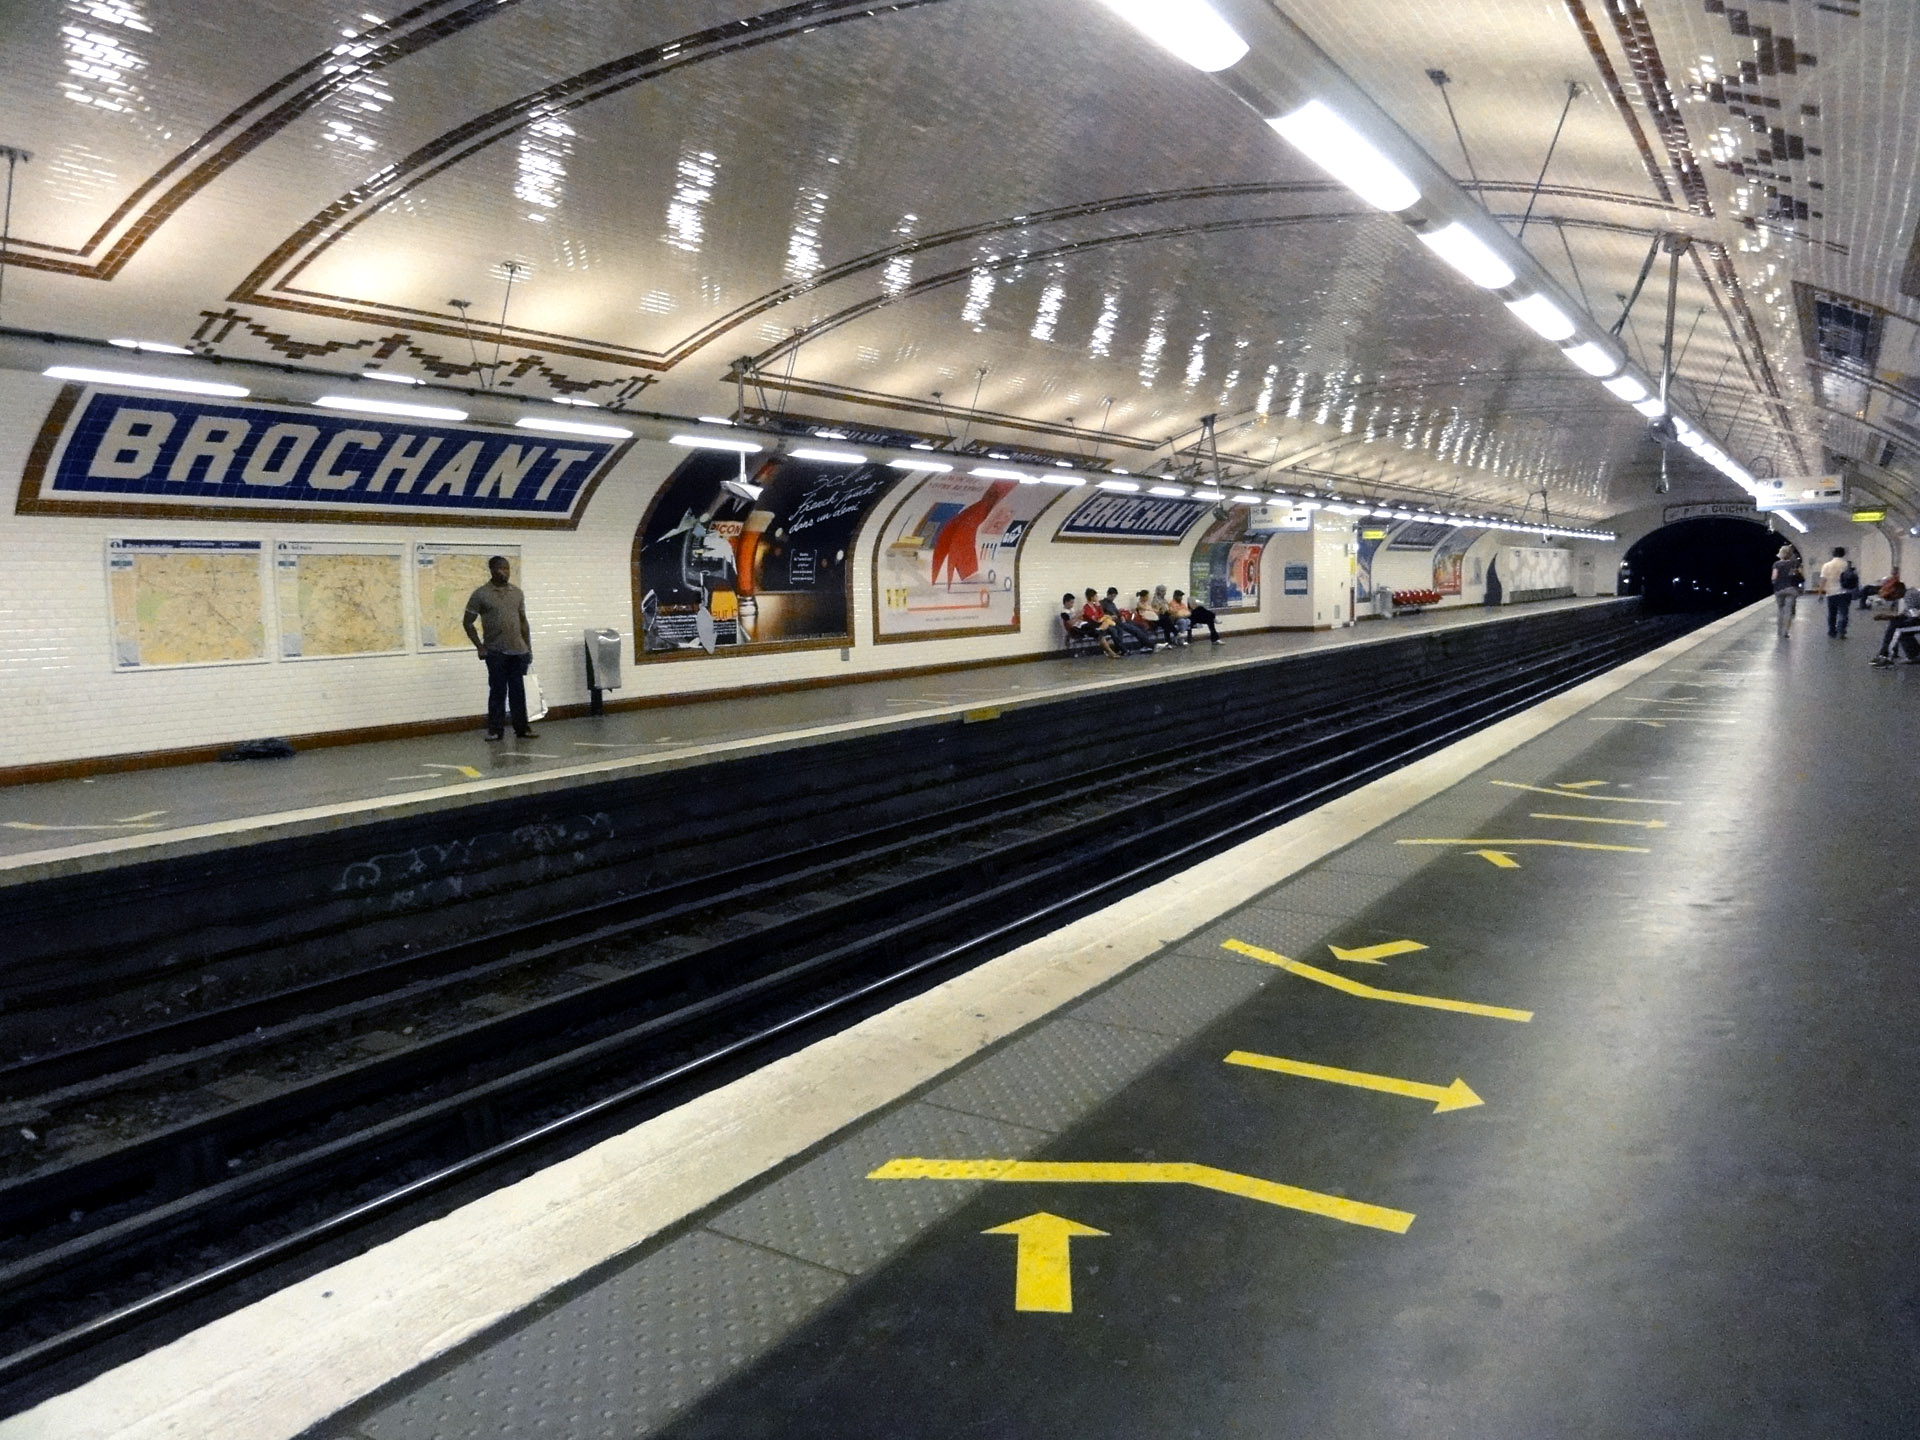 Metro_de_Paris_-_Ligne_13_-_Brochant_15